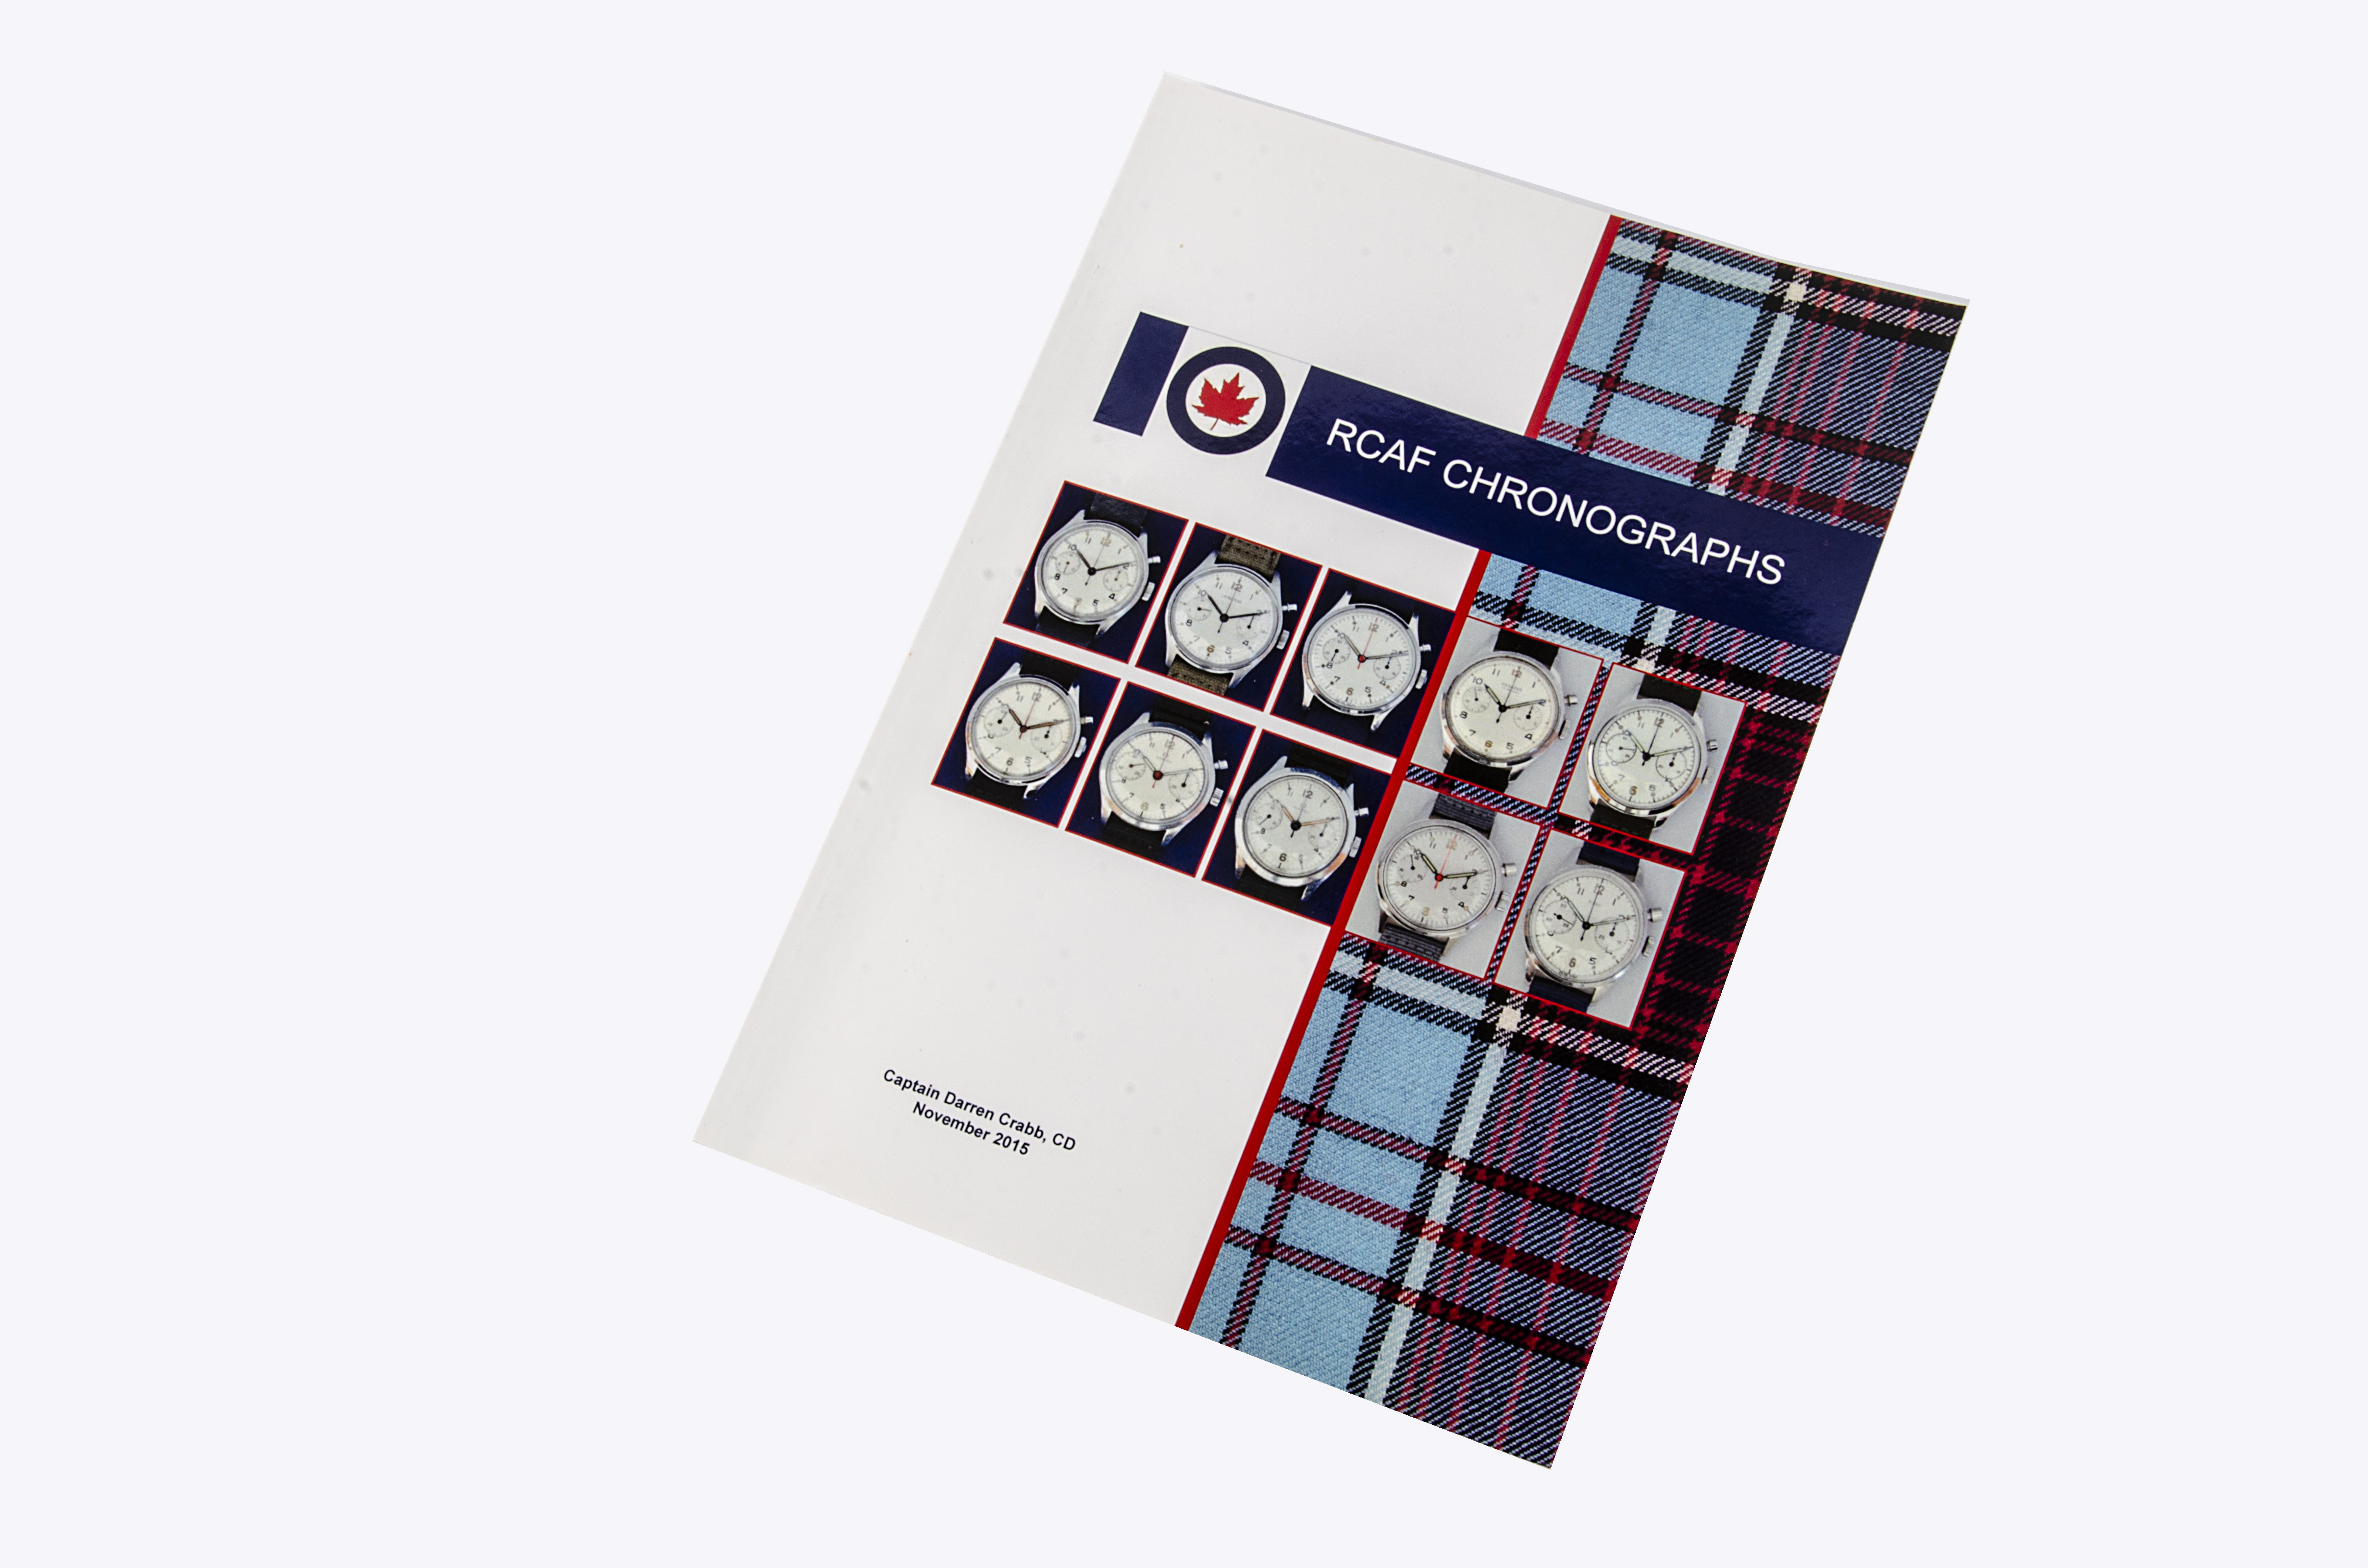 Book, RCAF Chronographs by Captain Darren 'Buster' Crabb, 2015, Published in Premiere Vision, ISBN